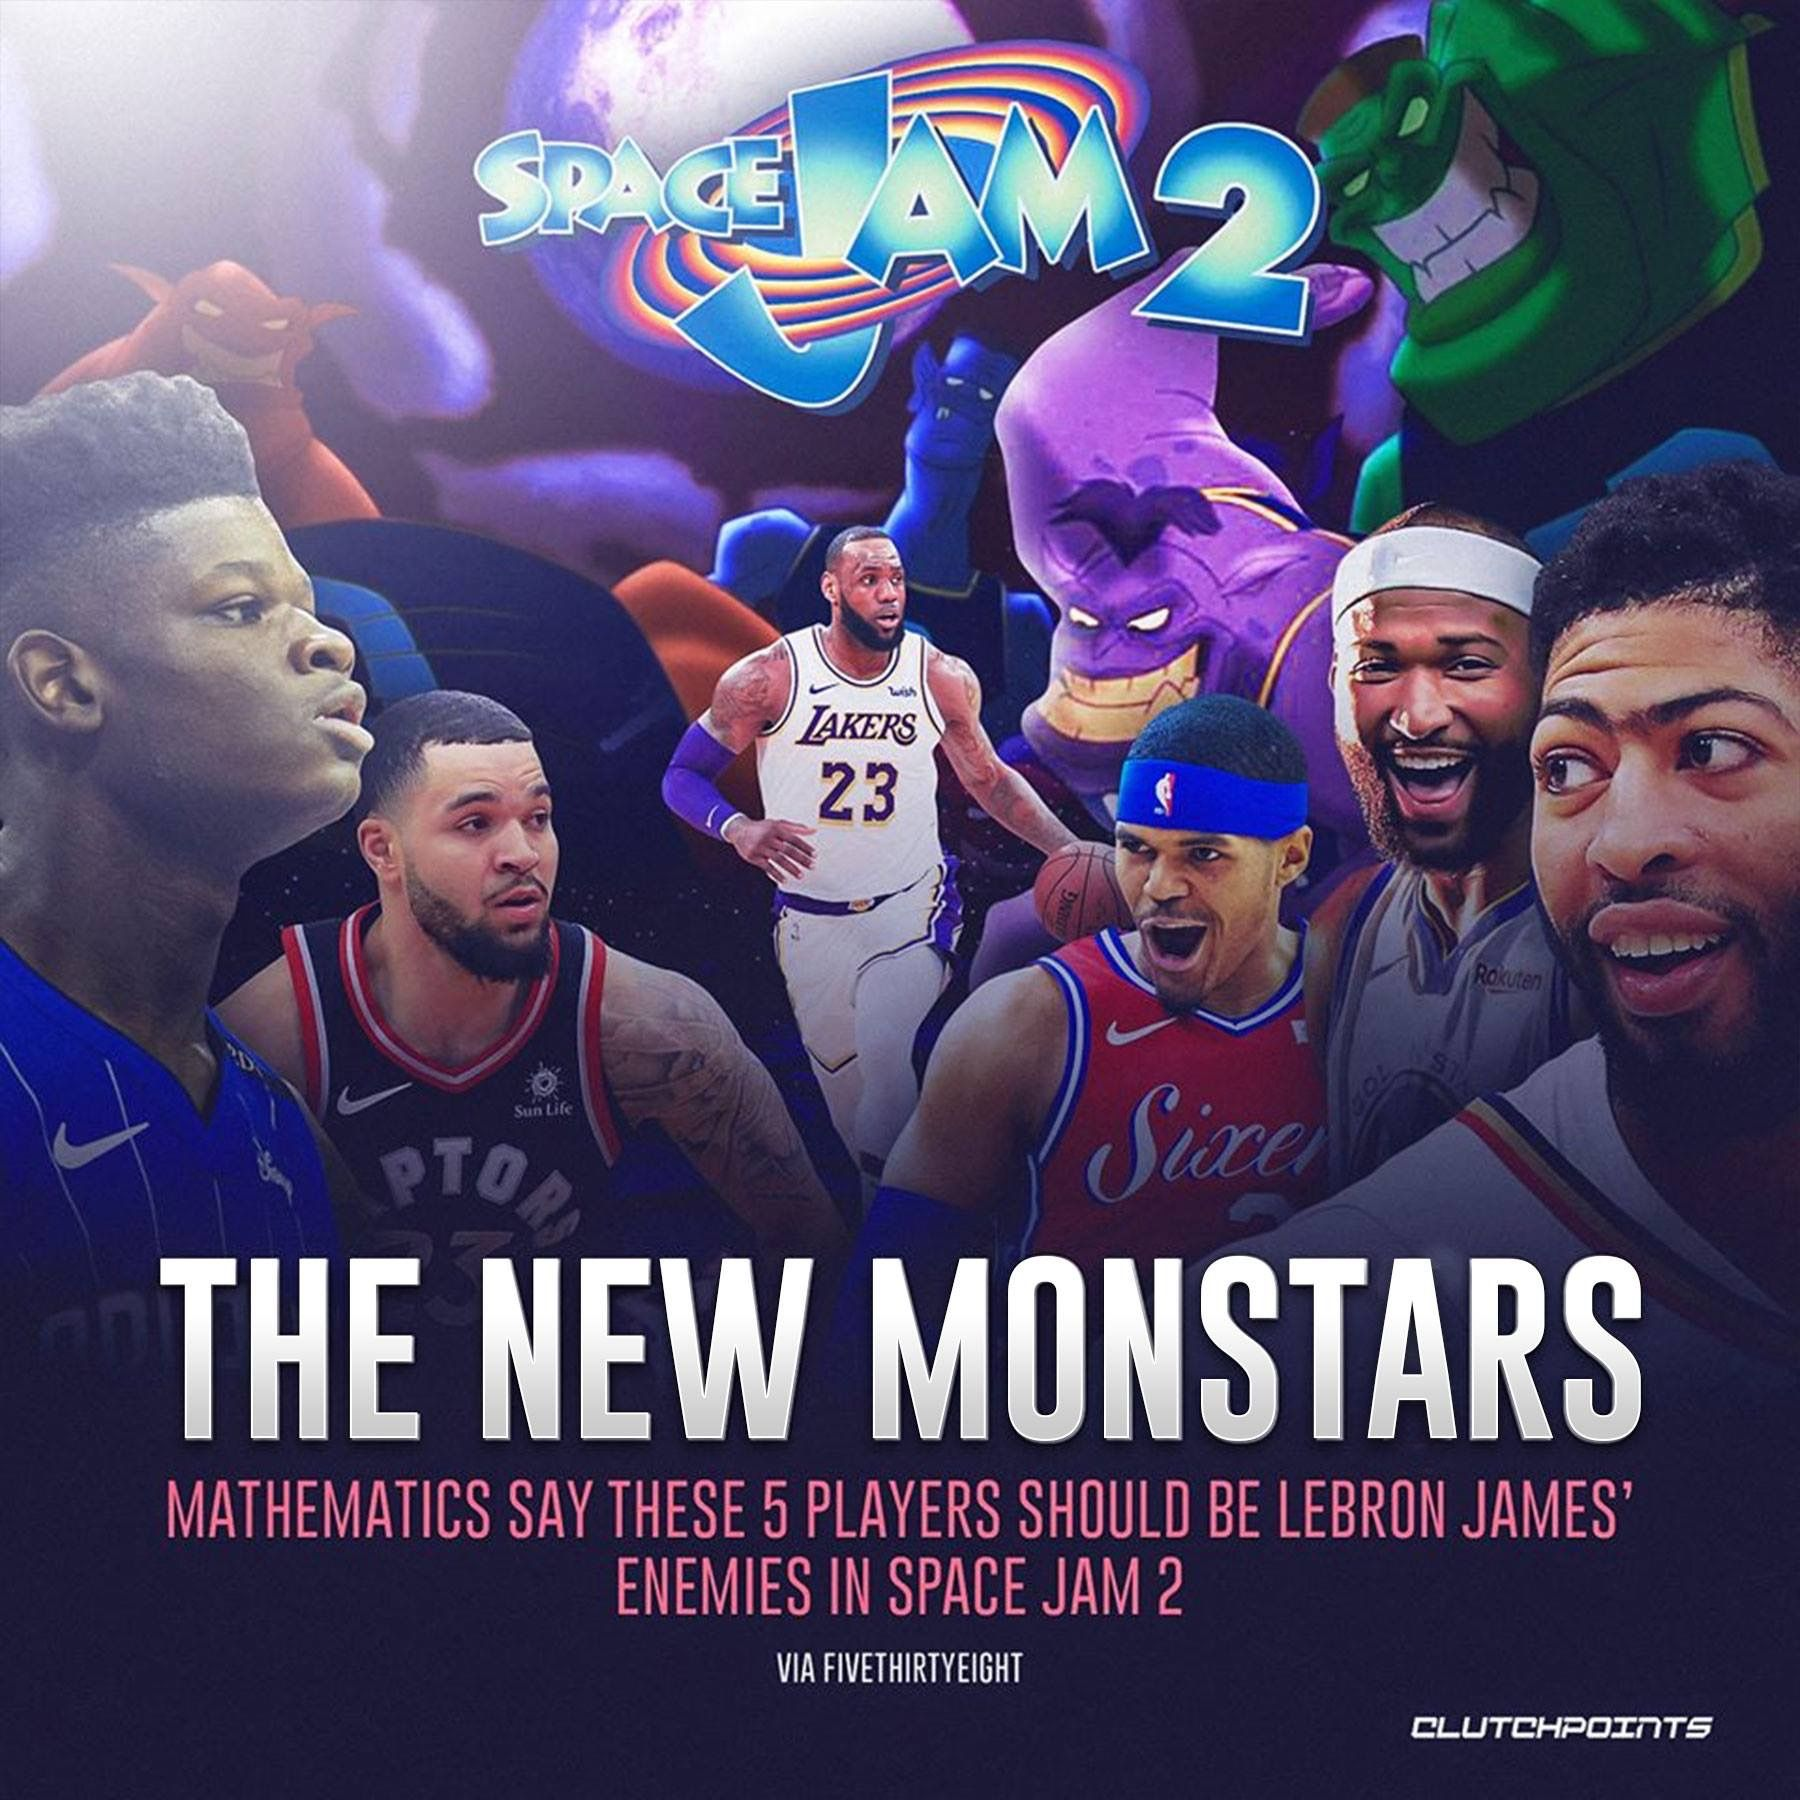 Pin By Charlotte Johnson On L A Lakers Space Jam Villain Instagram